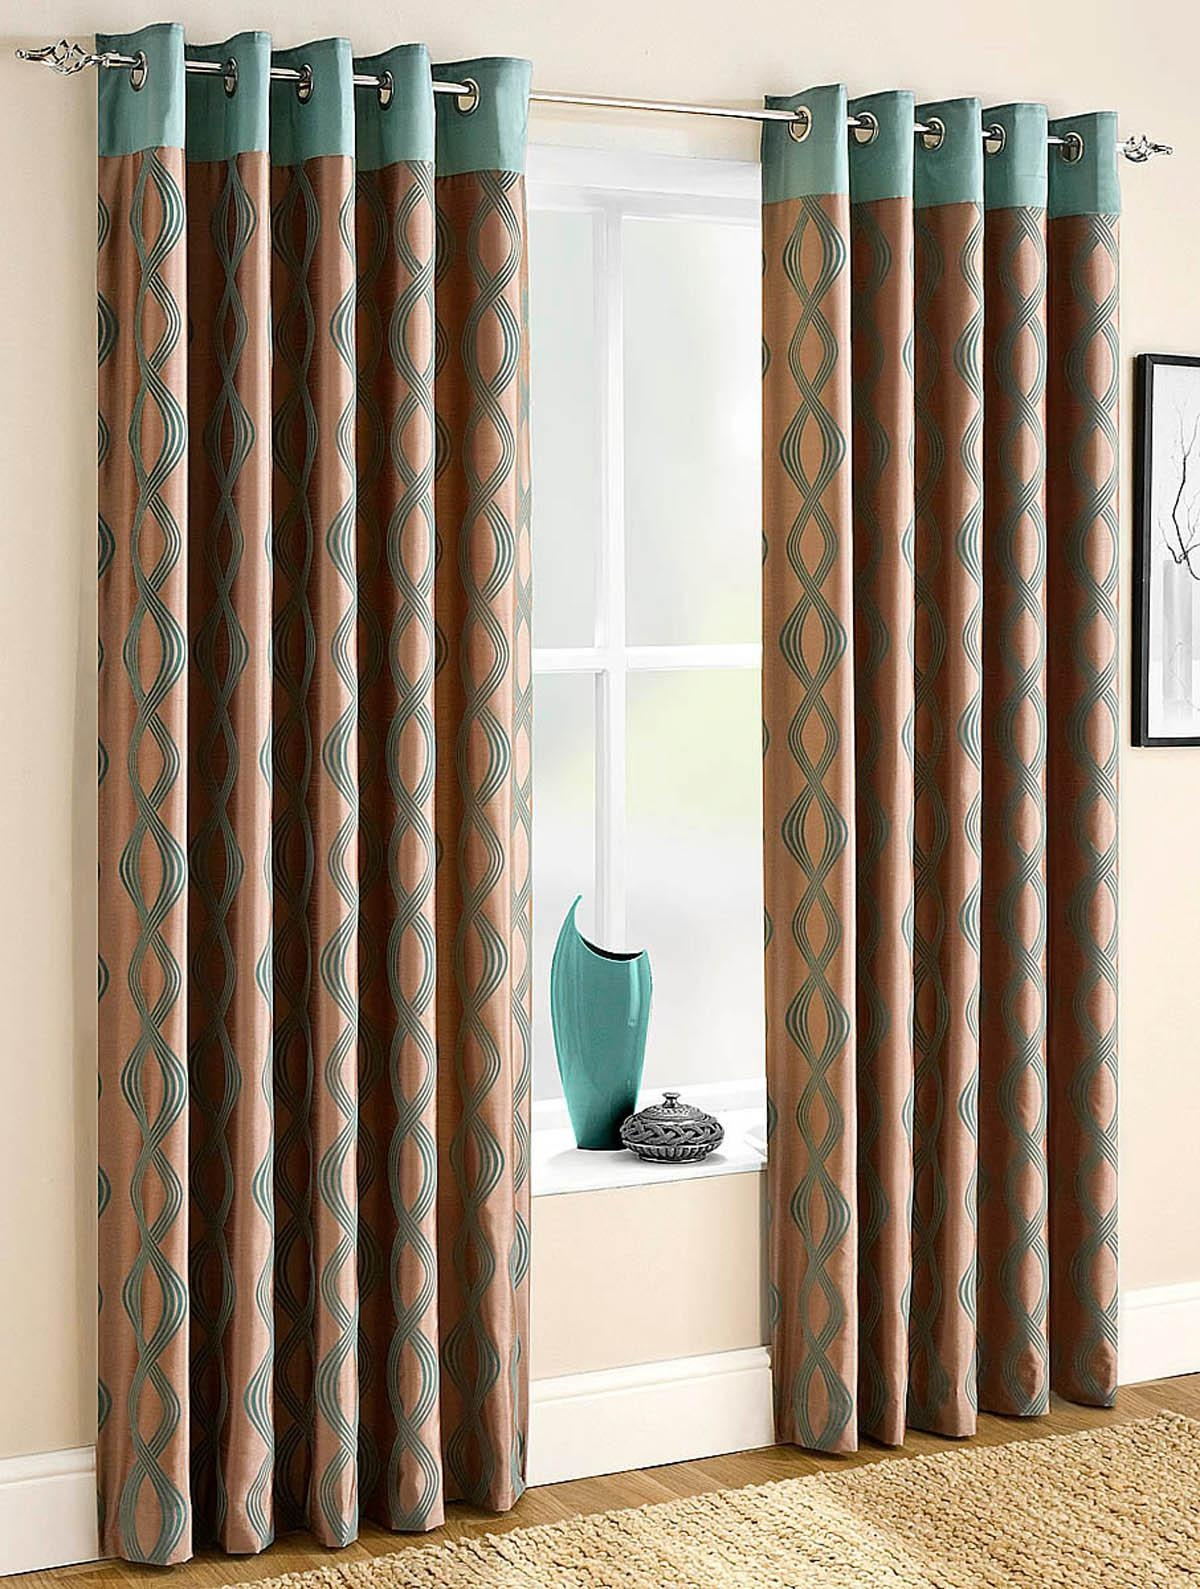 Teal Curtains Winda 7 Furniture Within Ready Made Draperies (Image 13 of 15)